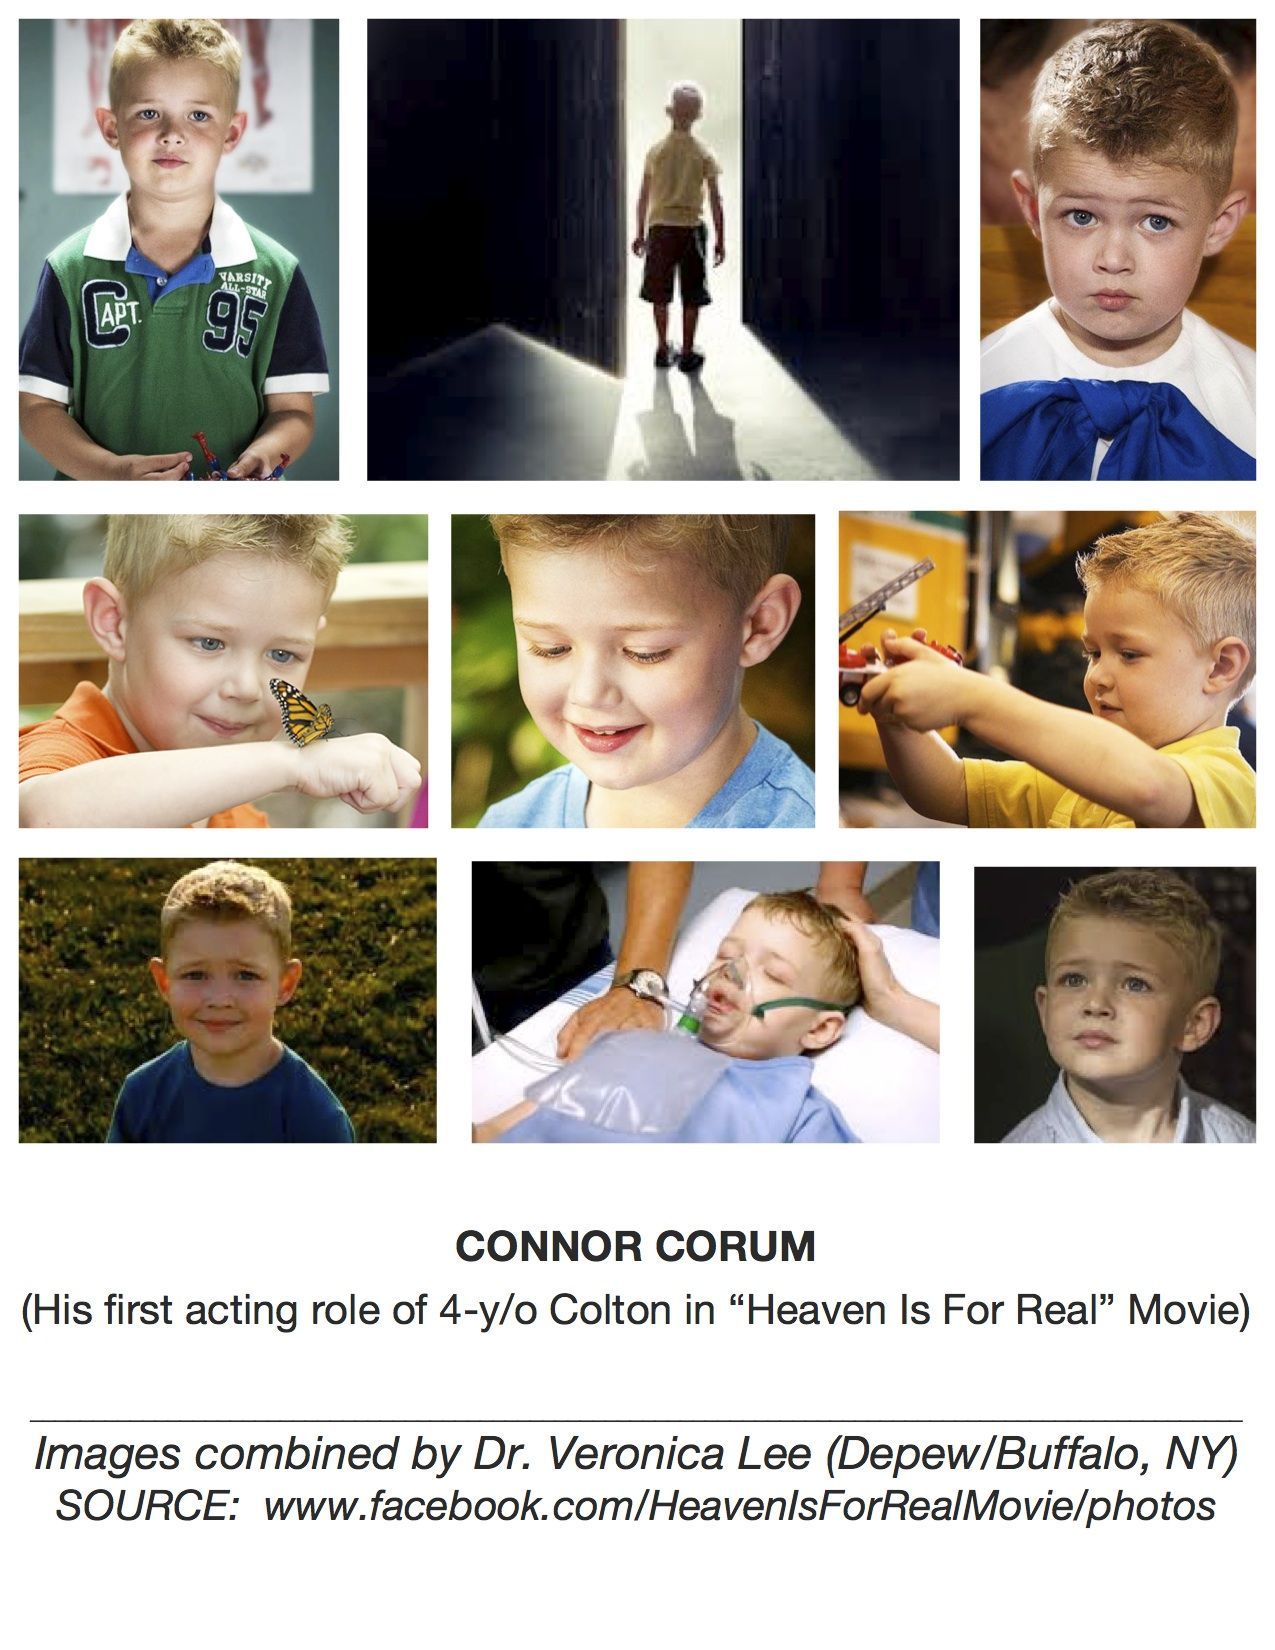 connor corum interviewconnor corum wiki, connor corum, connor corum age, connor corum bio, connor corum instagram, connor corum tumblr, connor corum imdb, connor corum wikipedia, connor corum biography, connor corum biografia, connor corum 2015, connor corum movies, connor corum interview, connor corum parents, connor corum heaven is for real, connor corum facebook, connor corum 2016, connor corum net worth, connor corum hometown, connor corum images